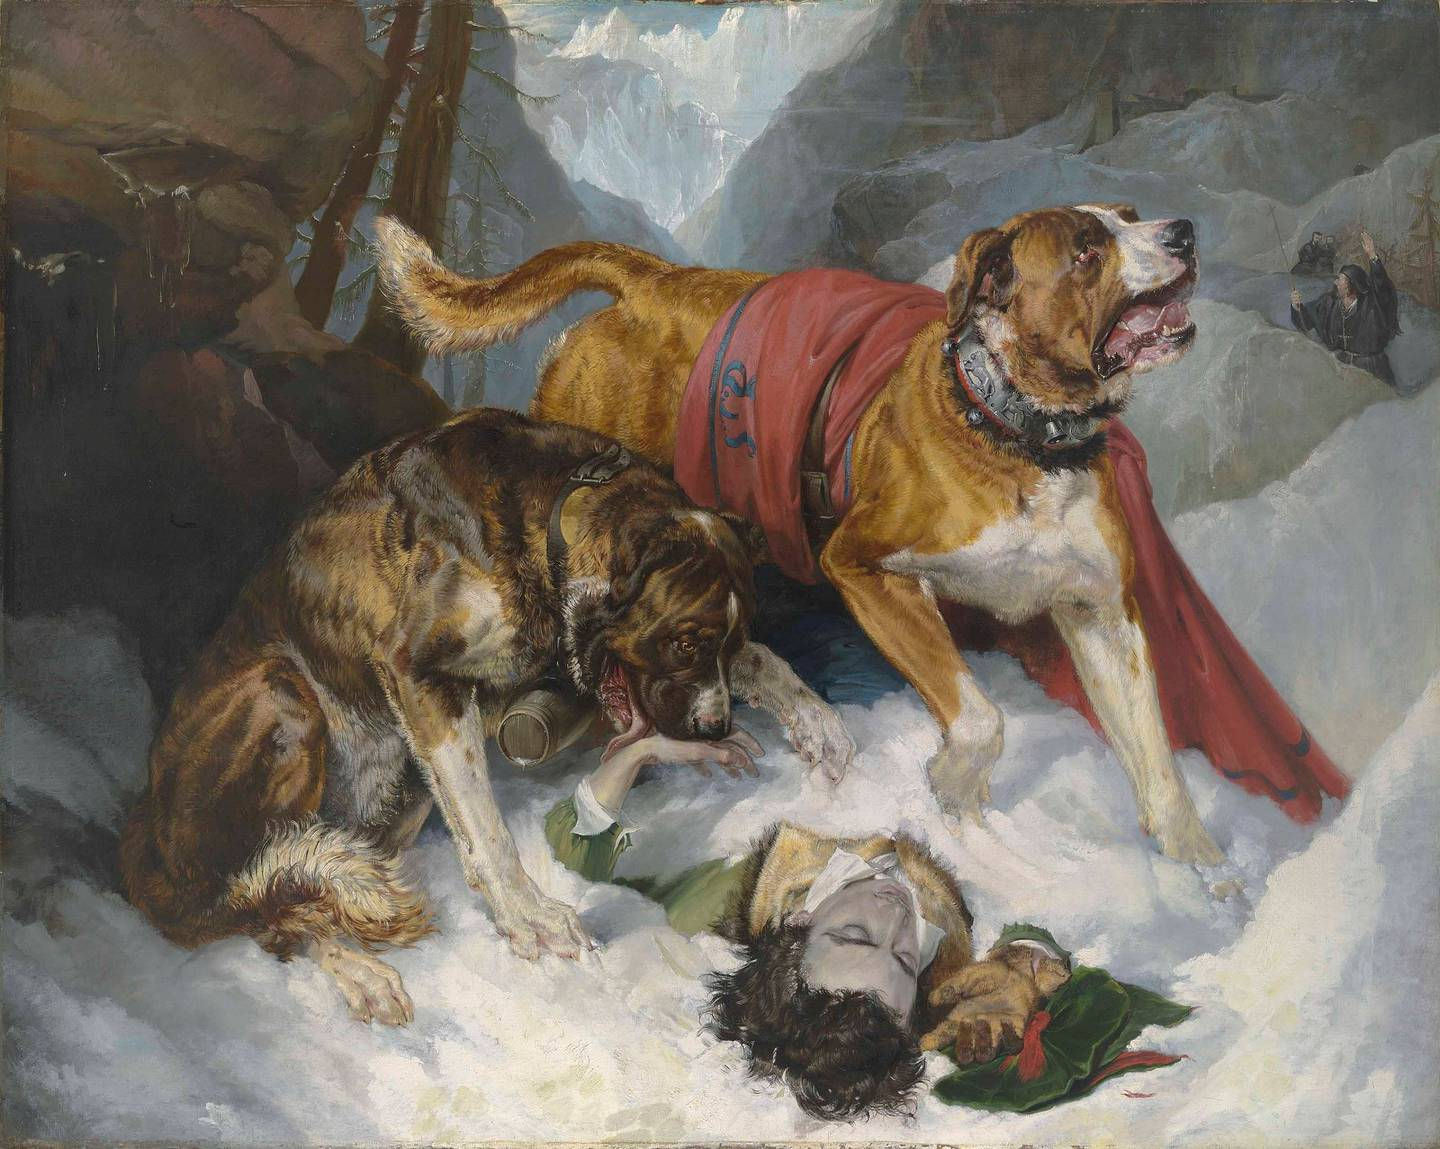 St Bernards were bred to conduct alpine rescue missions, carrying brandy and blankets. Photo: Sir...